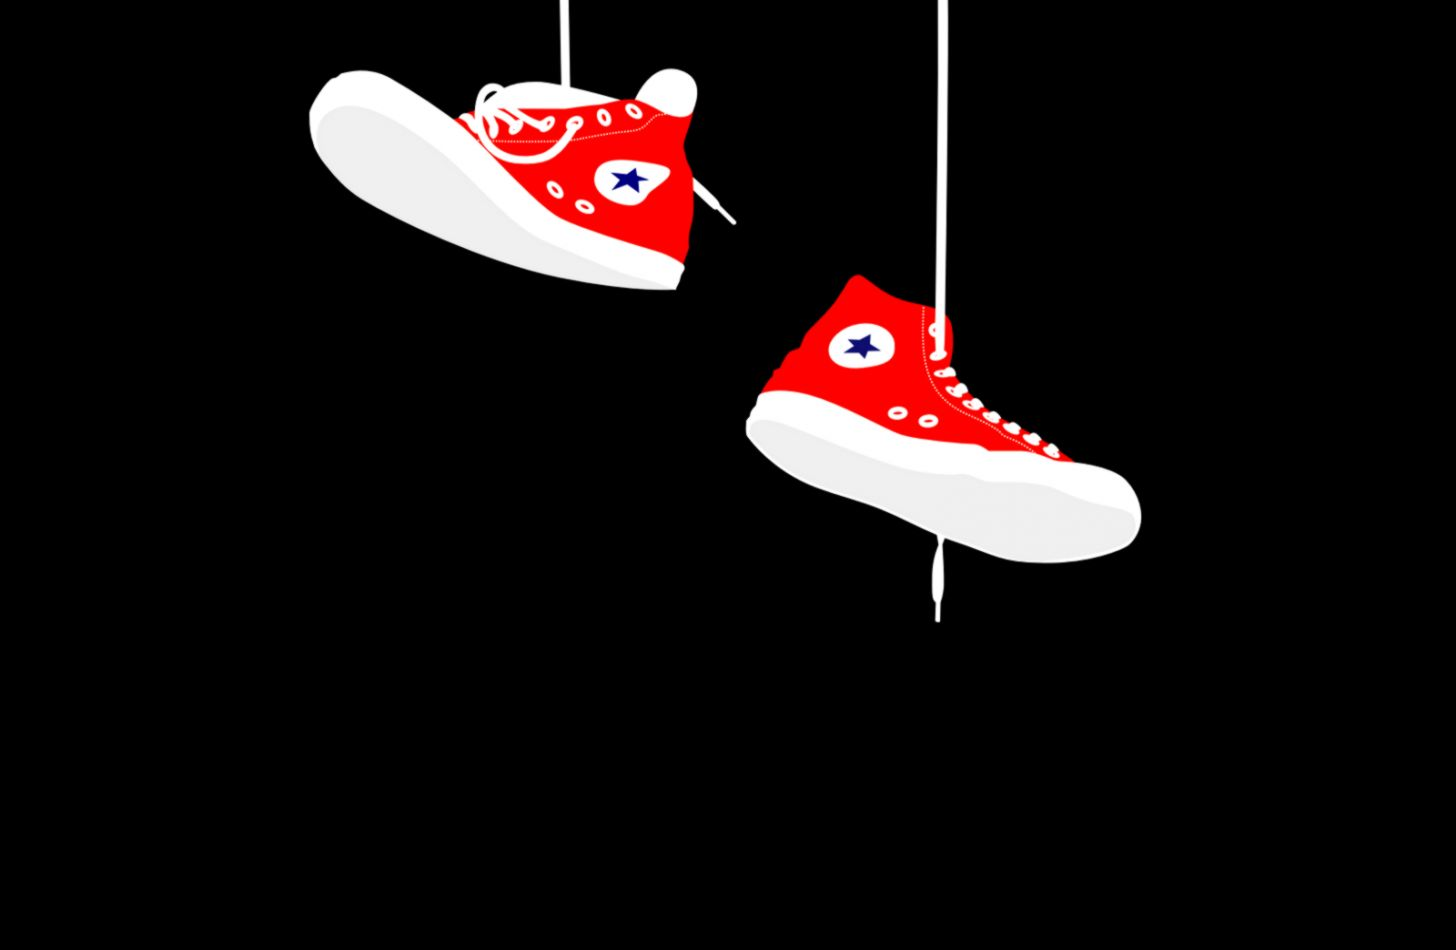 a8cd830b11e4 Converse All Star Hd Logo Wallpapers Download Free In free image